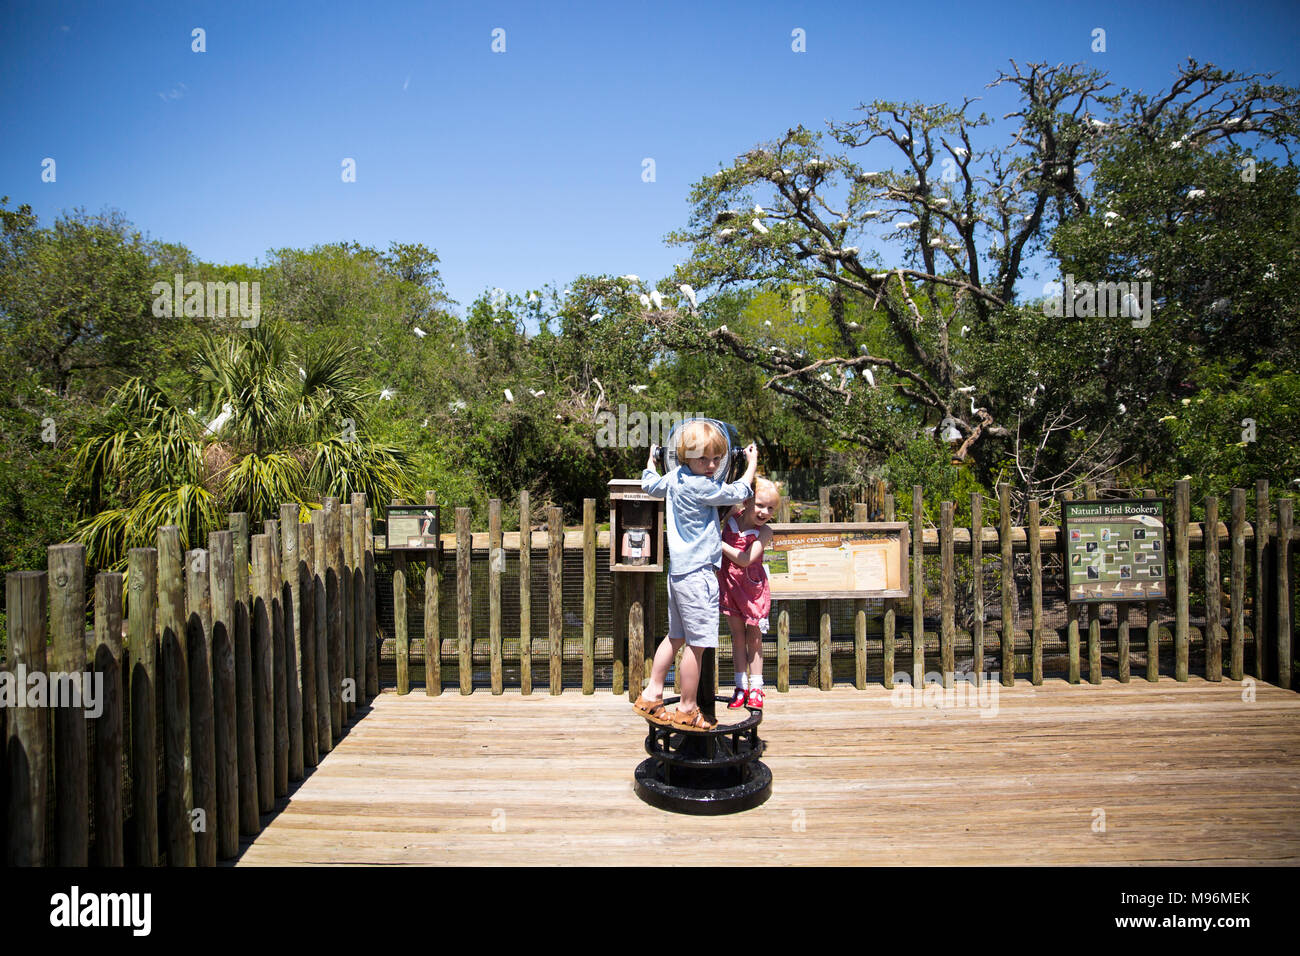 Children using lookout at the zoo Stock Photo